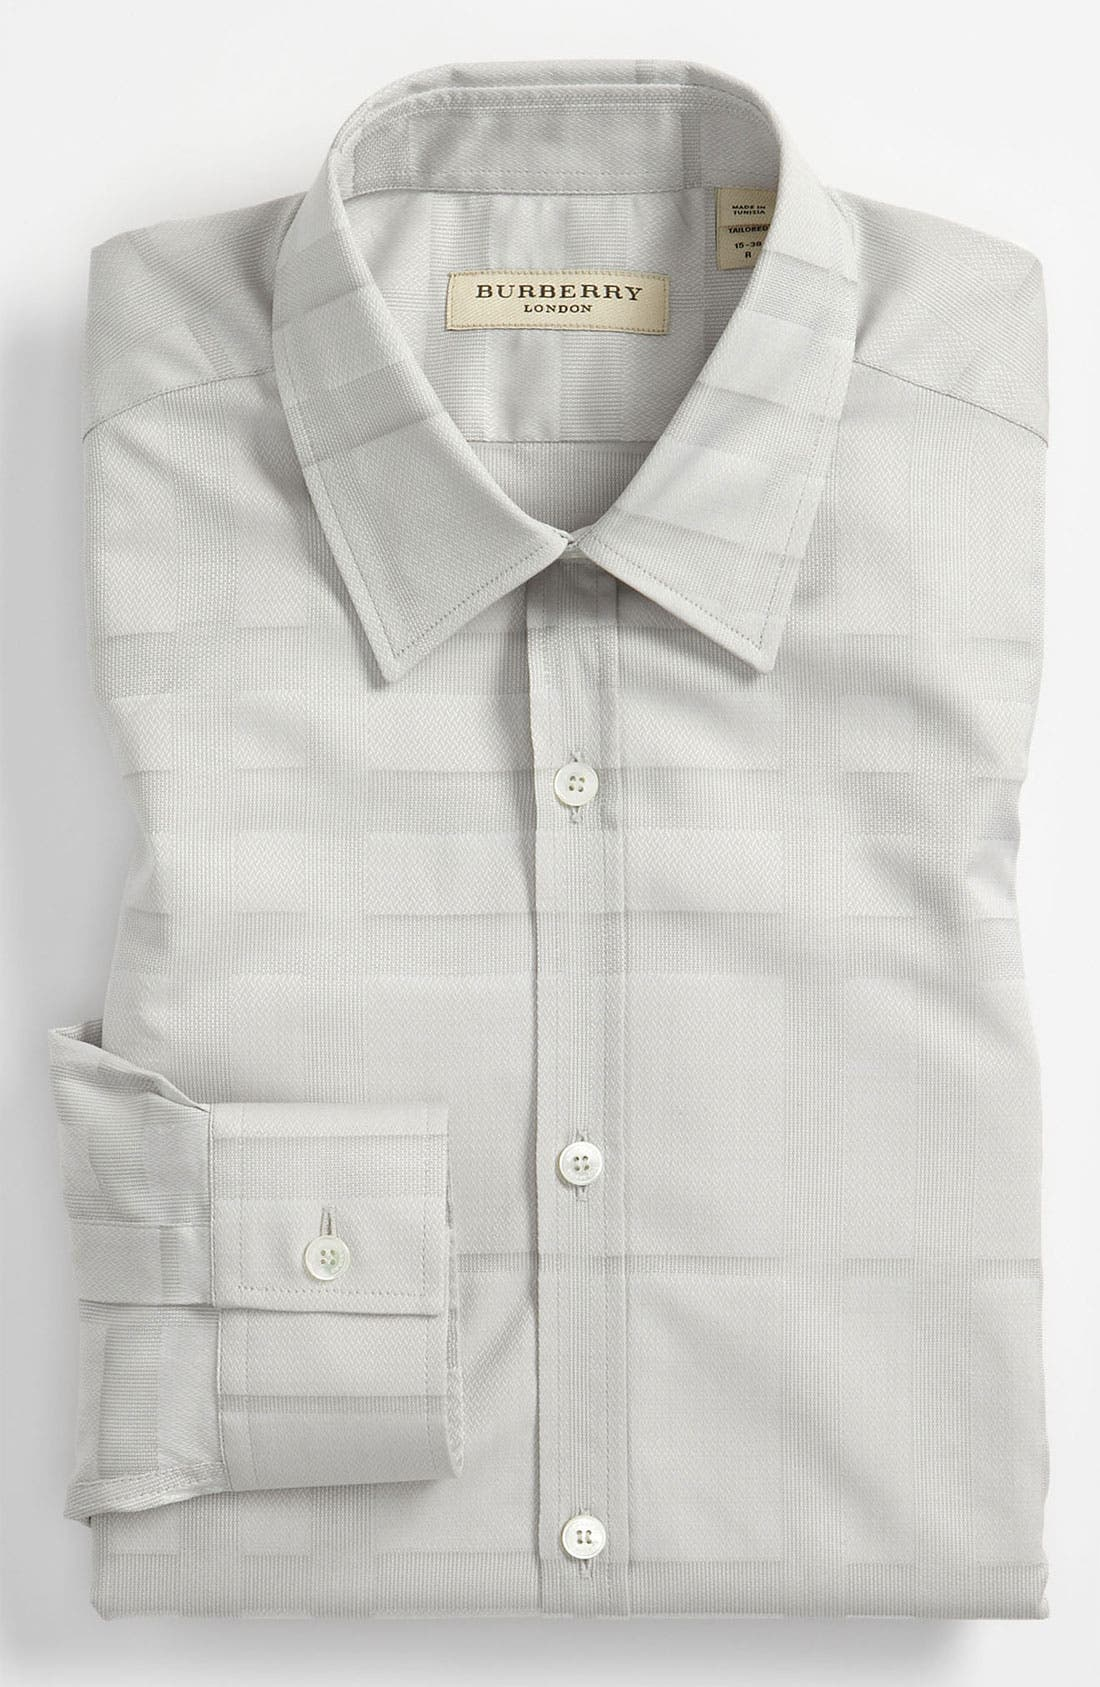 Alternate Image 1 Selected - Burberry London Modern Fit Dress Shirt